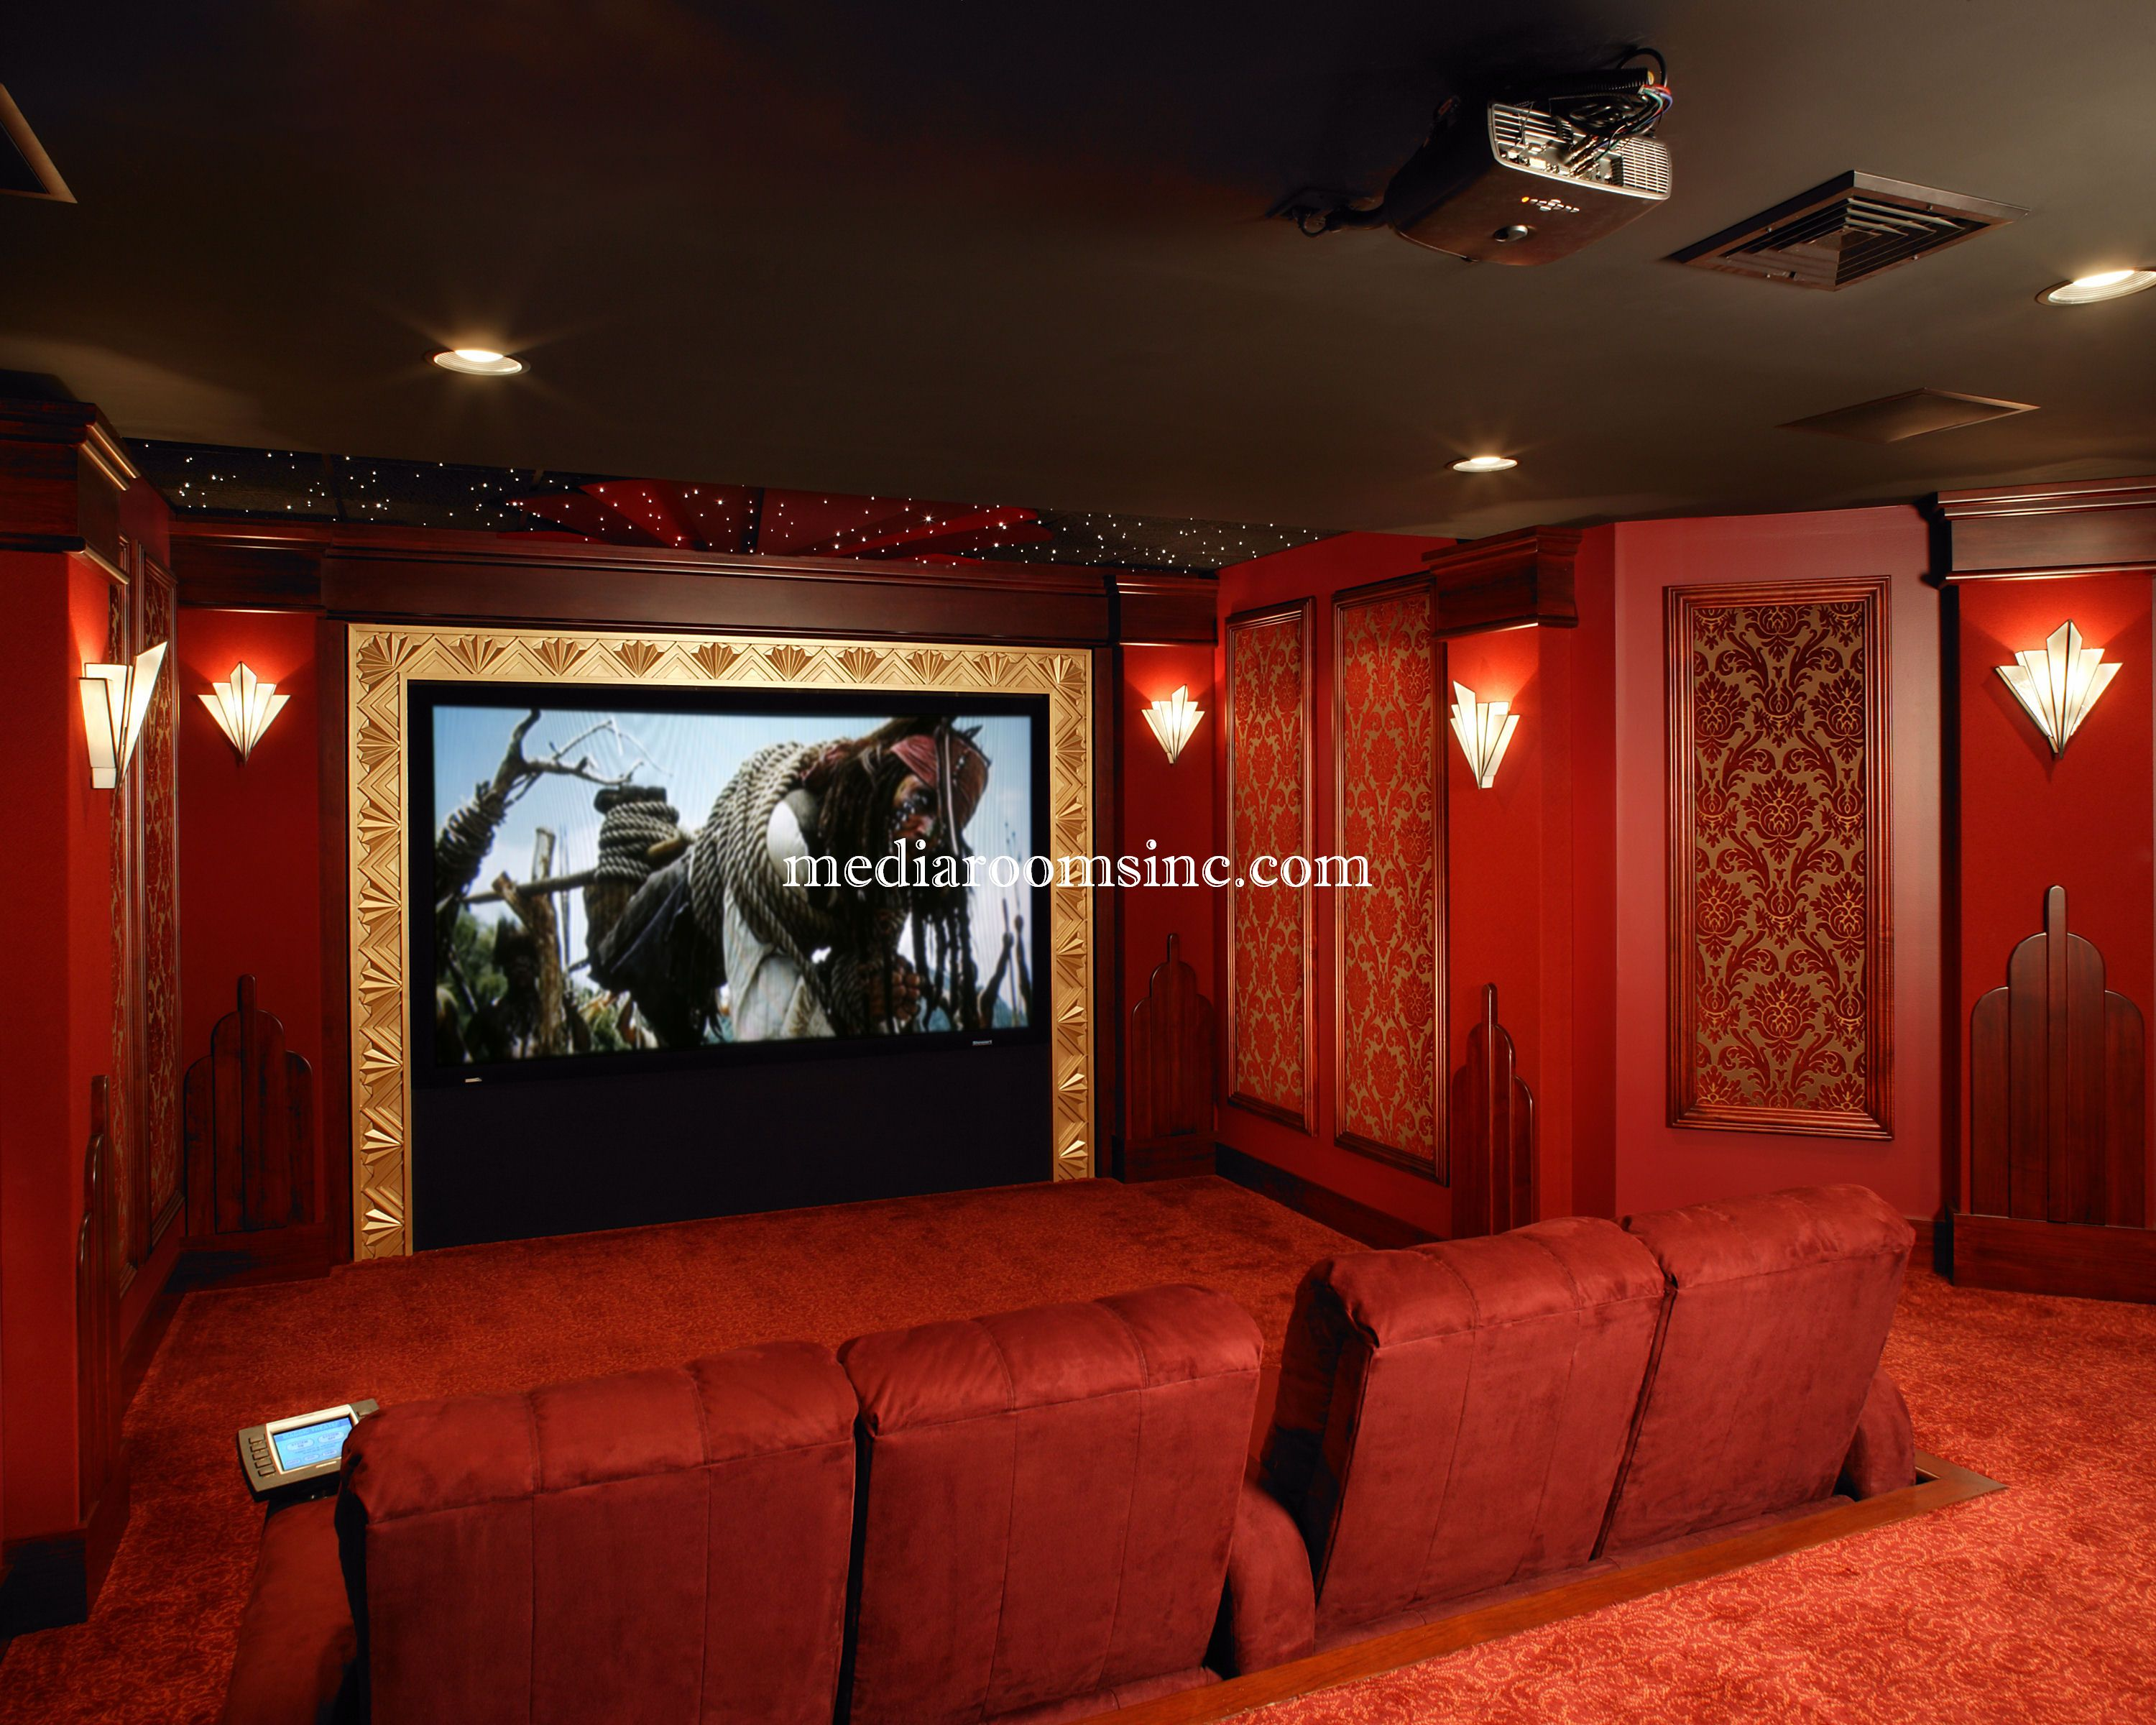 home theater automation blog media rooms news updates. Black Bedroom Furniture Sets. Home Design Ideas